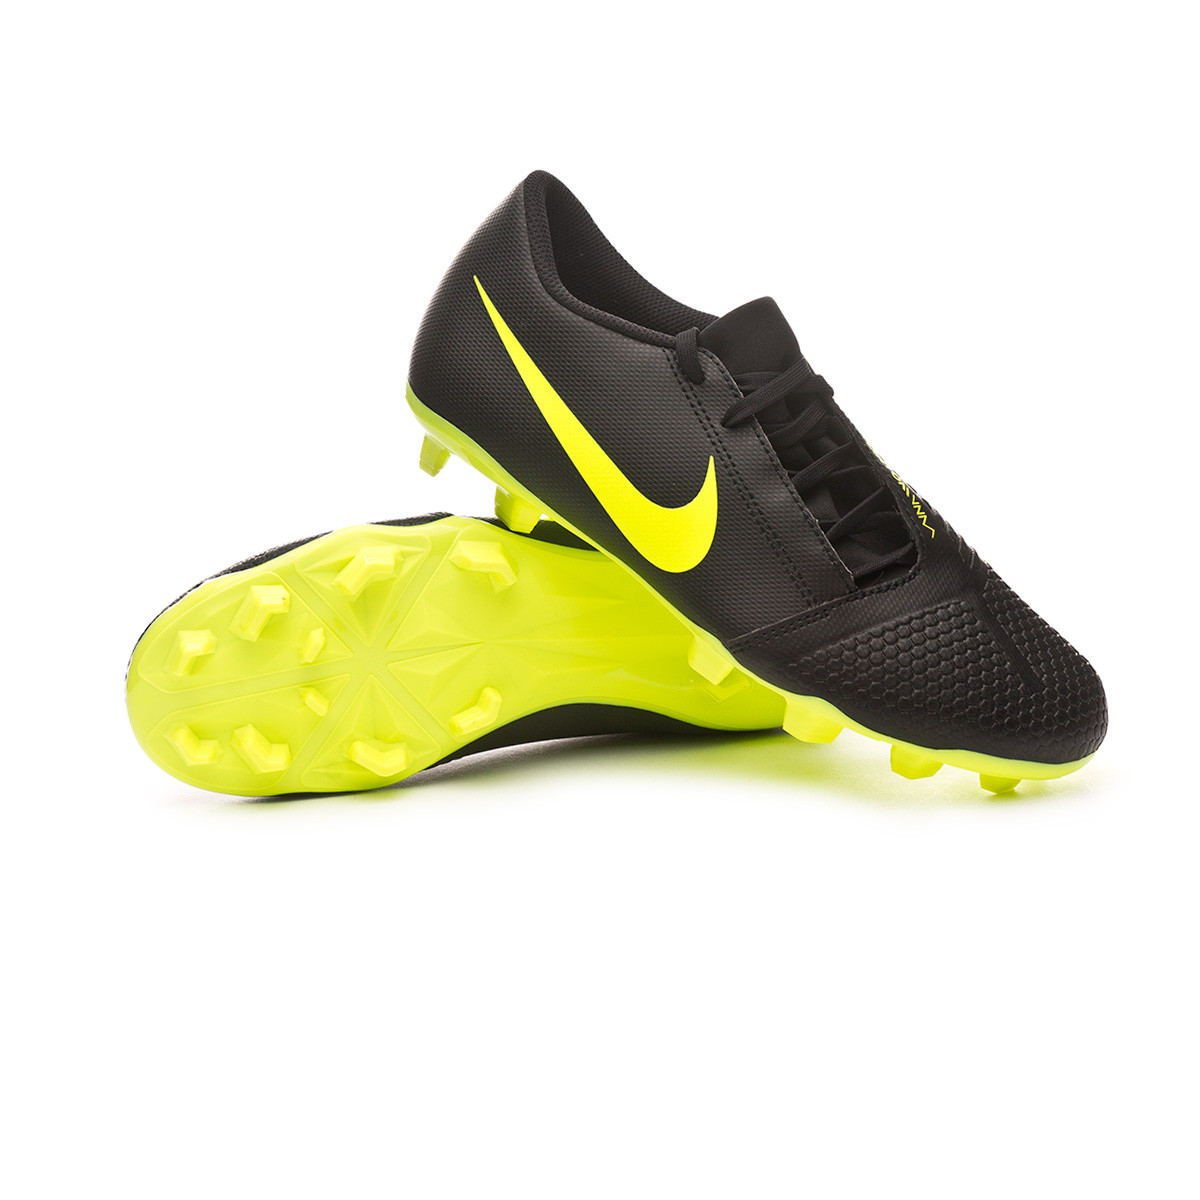 Crítica nieve Dislocación  Football Boots Nike Phantom Venom Club FG Black-Volt - Football store  Fútbol Emotion